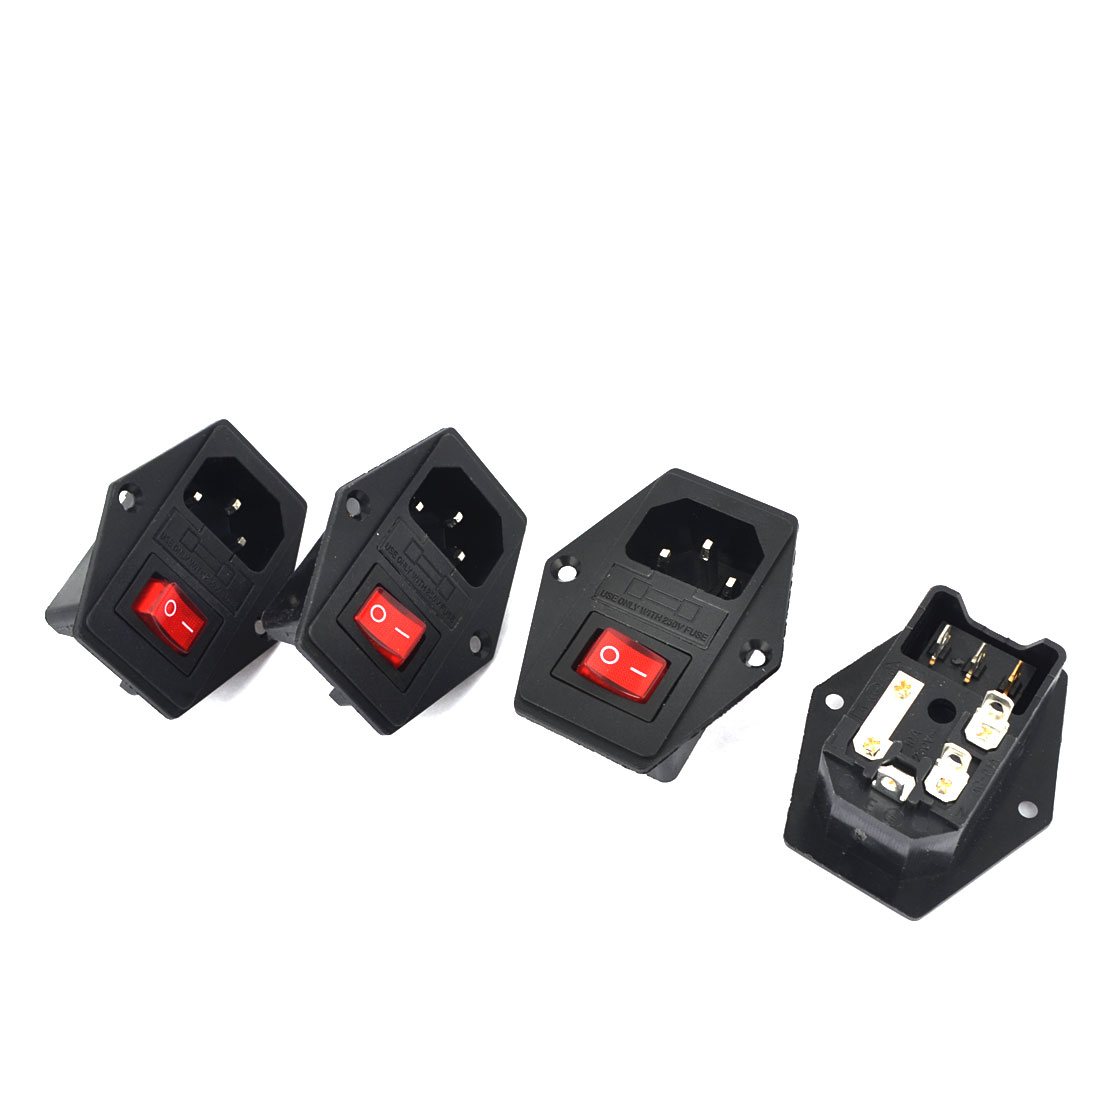 4 Pcs Replacement IEC320 C14 3 Pole 6 Terminals SPST Black Fused Power Socket w Red Switch AC 10A 250V